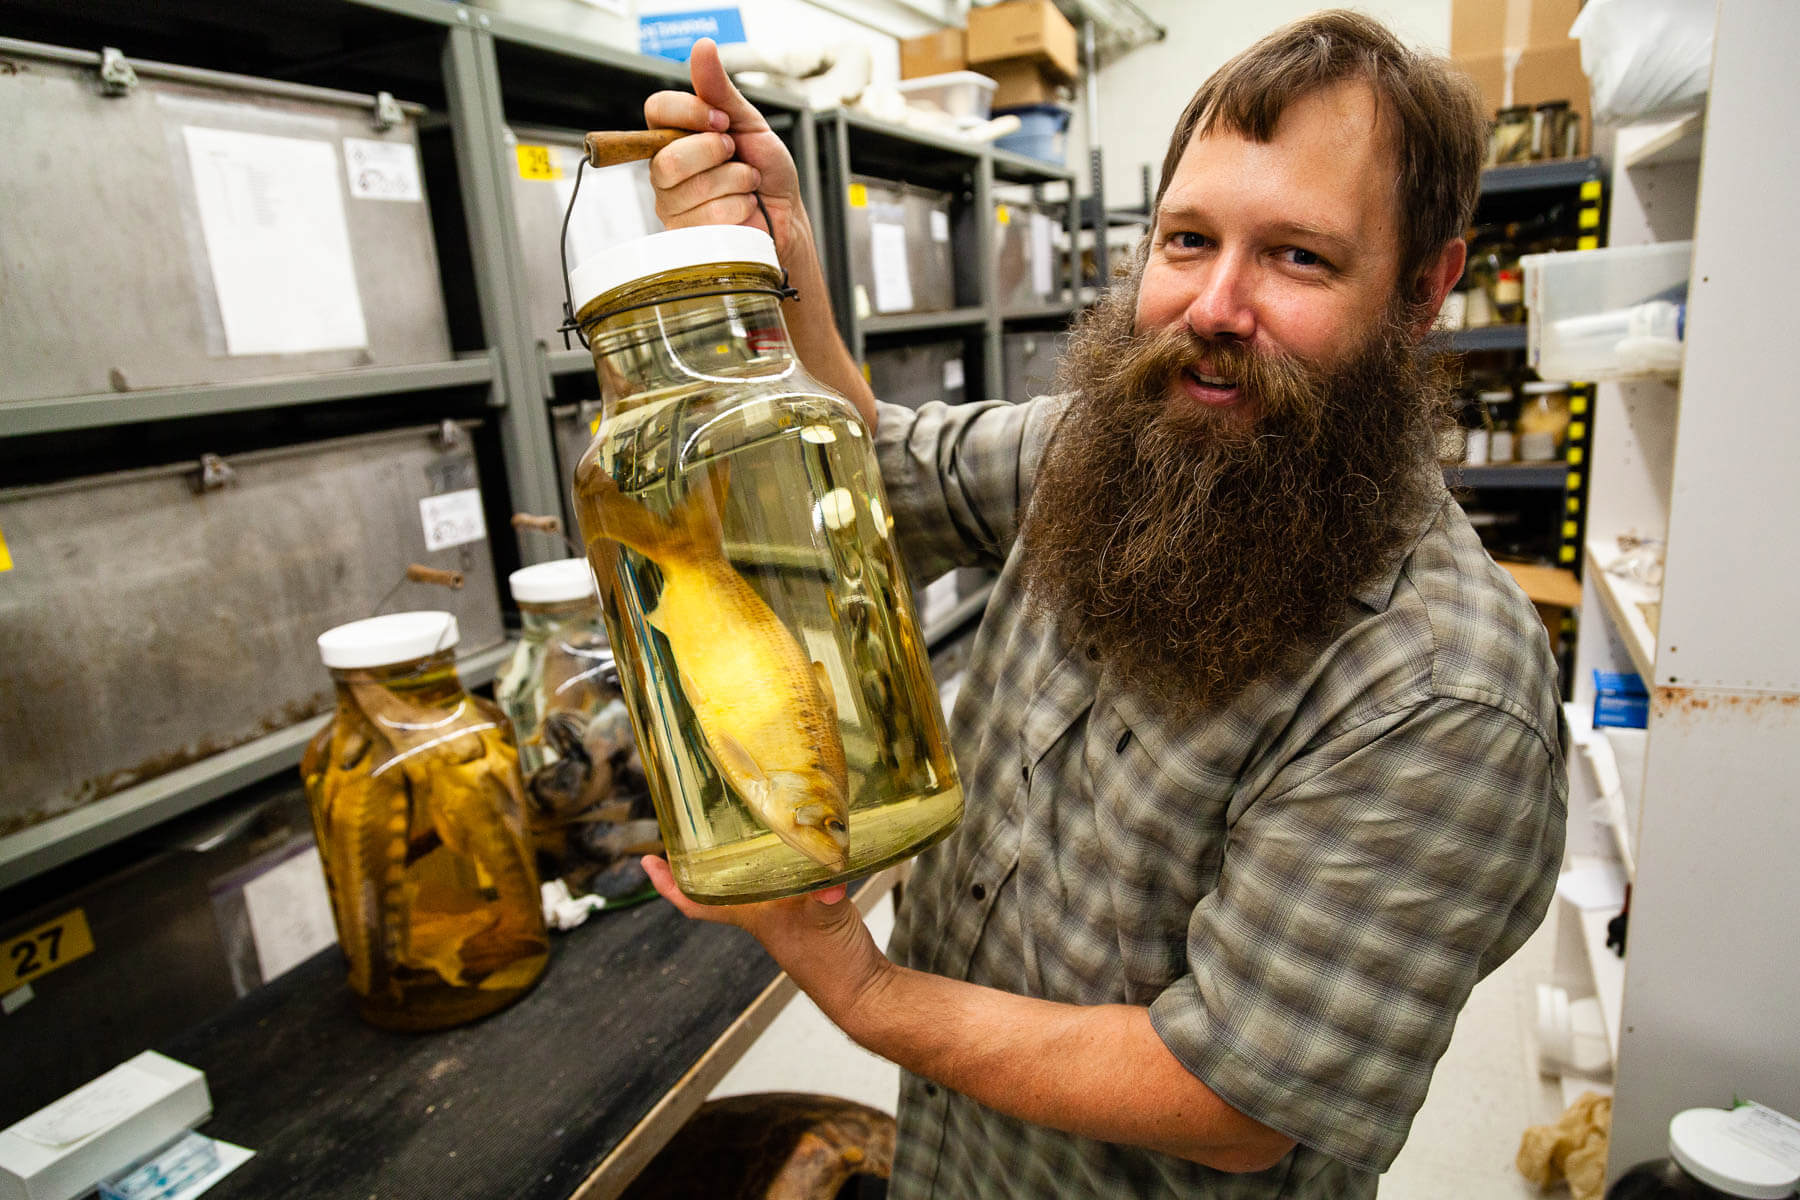 Bearded man holds a fish in a jar